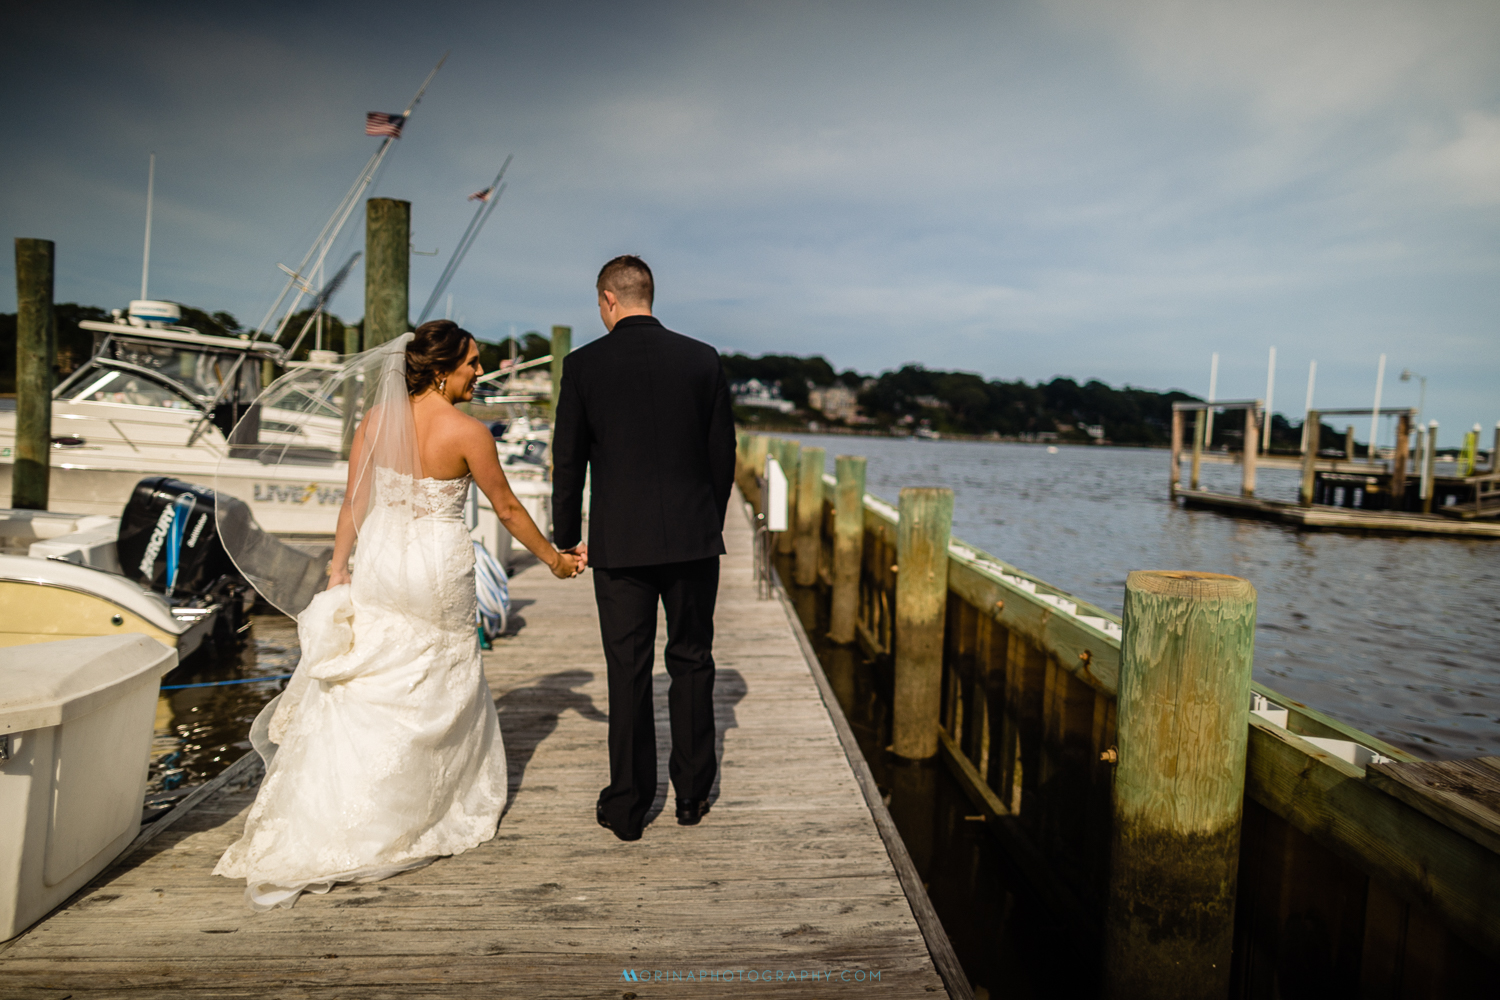 Amanda & Austin wedding at Crystal Point Yacht Club 53.jpg